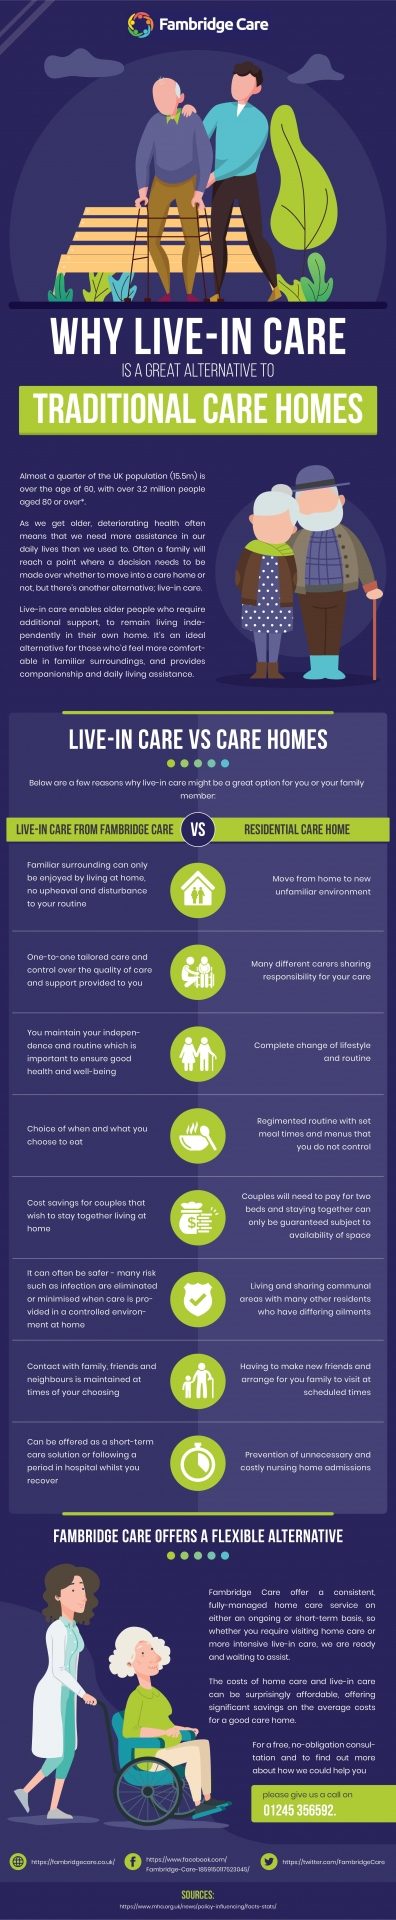 Why Live-In Care is a great alternative to traditional care homes